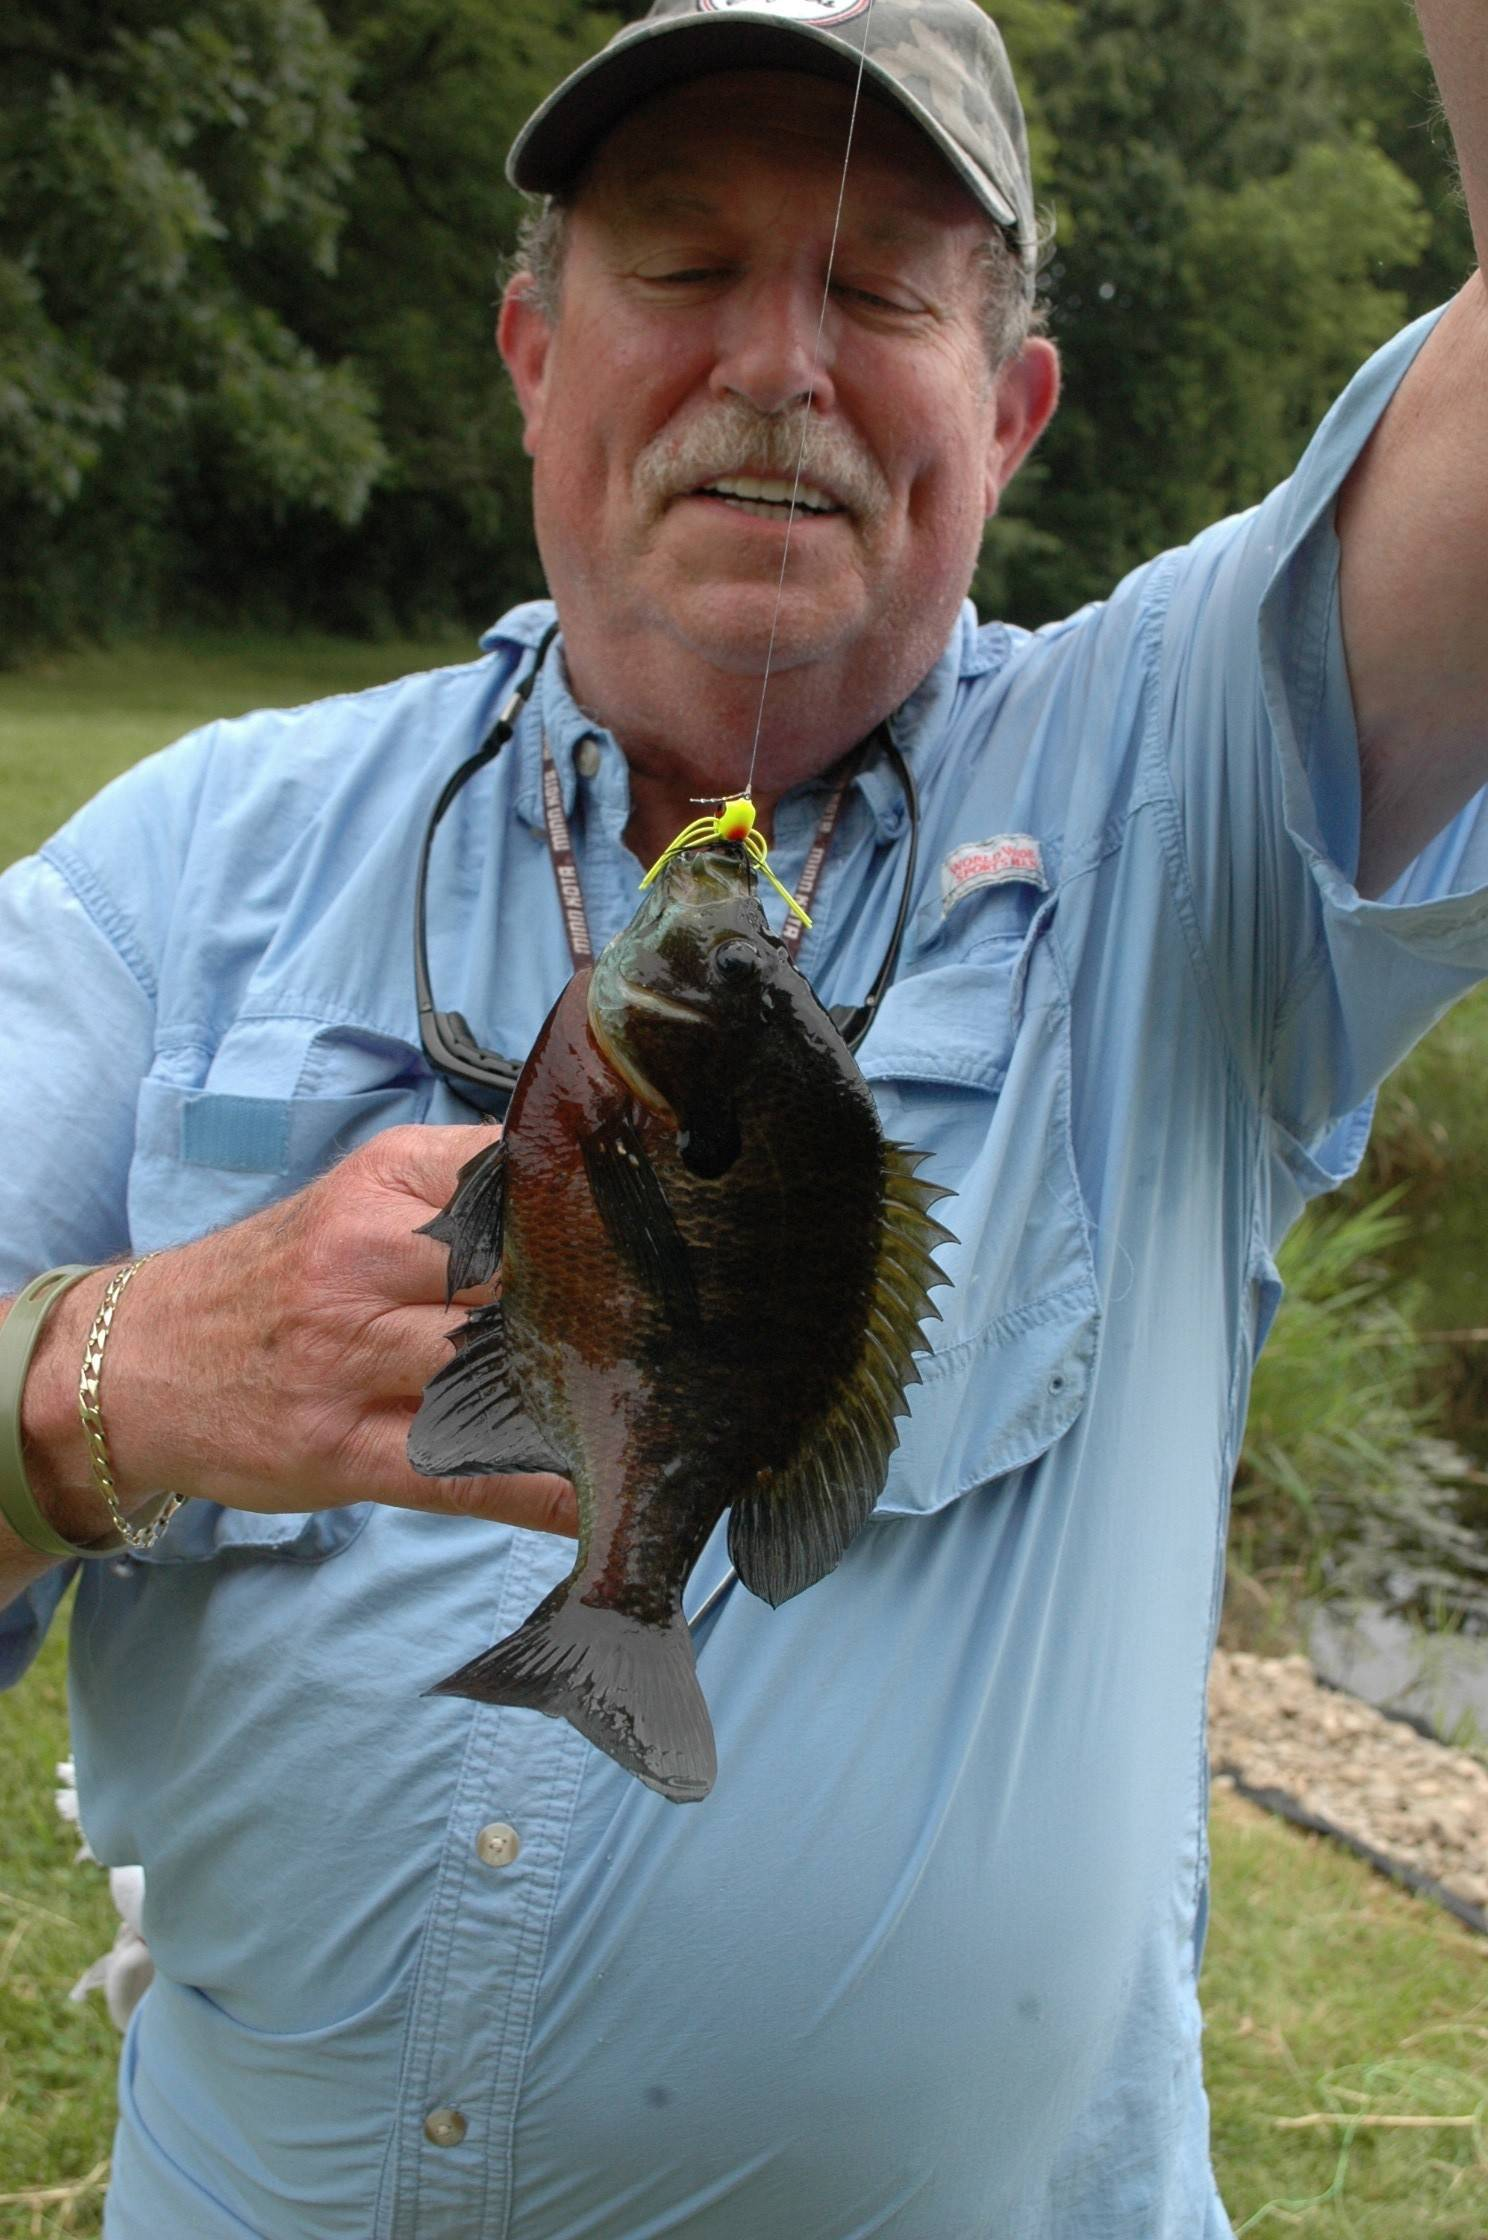 Industrious anglers will find fly rod rewards